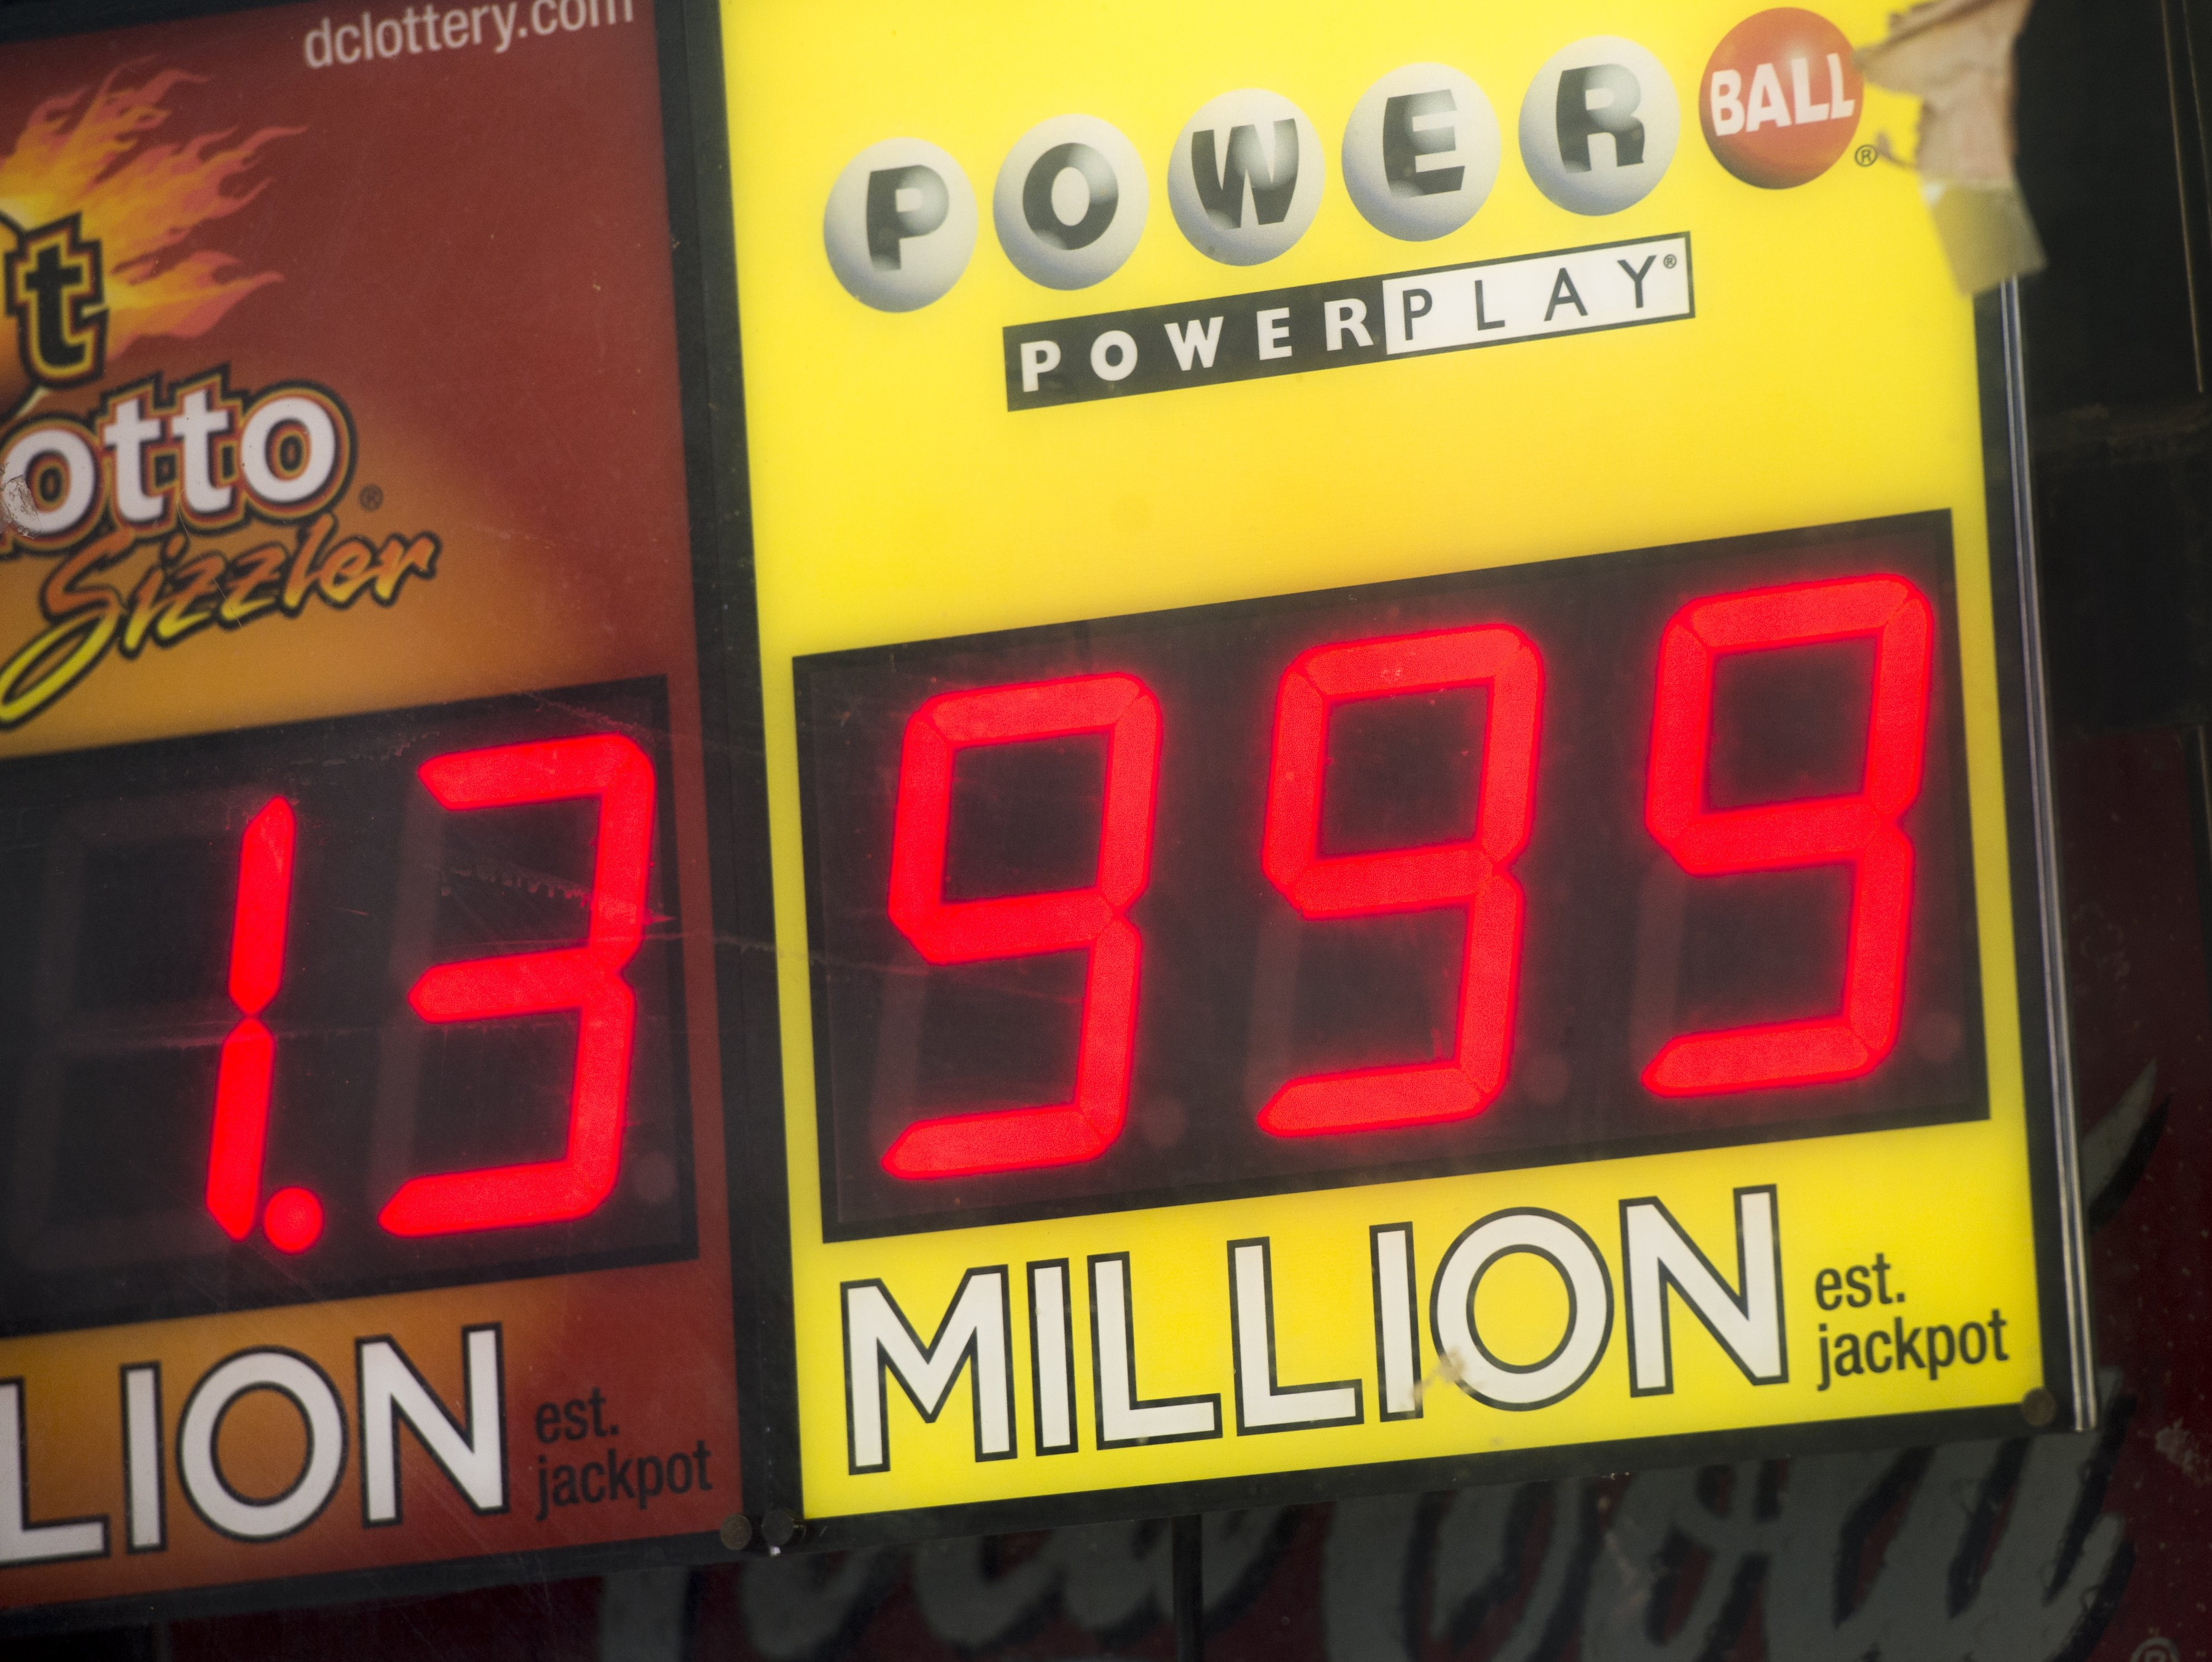 A sign showing a Powerball prize of $999 million, the largest jackpot winnings that the Powerball sign can display, with the actual Powerball jackpot estimated at $1.3 billion, outside a deli in Washington, DC on Jan 11.